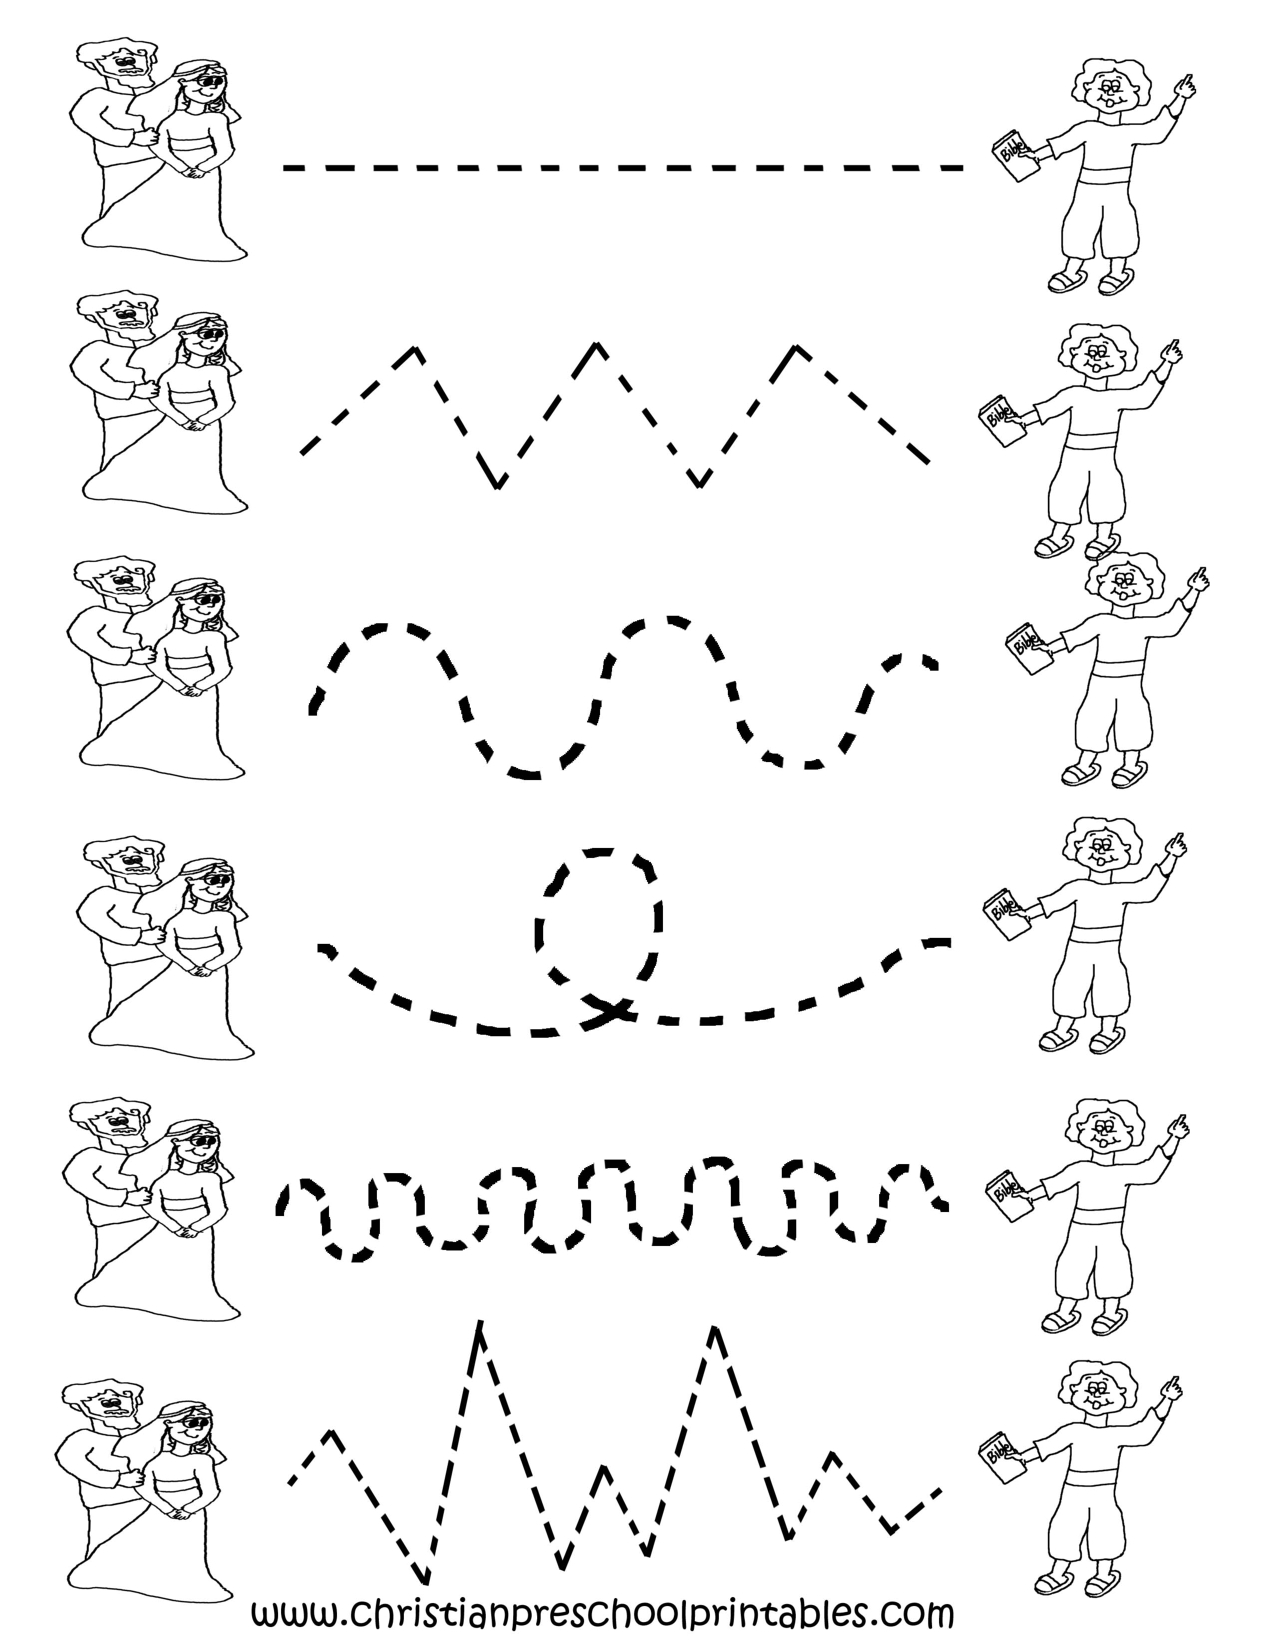 Image Detail For -Preschool Tracing Worksheets   Preschool Ideas - Free Printable Preschool Worksheets Tracing Lines